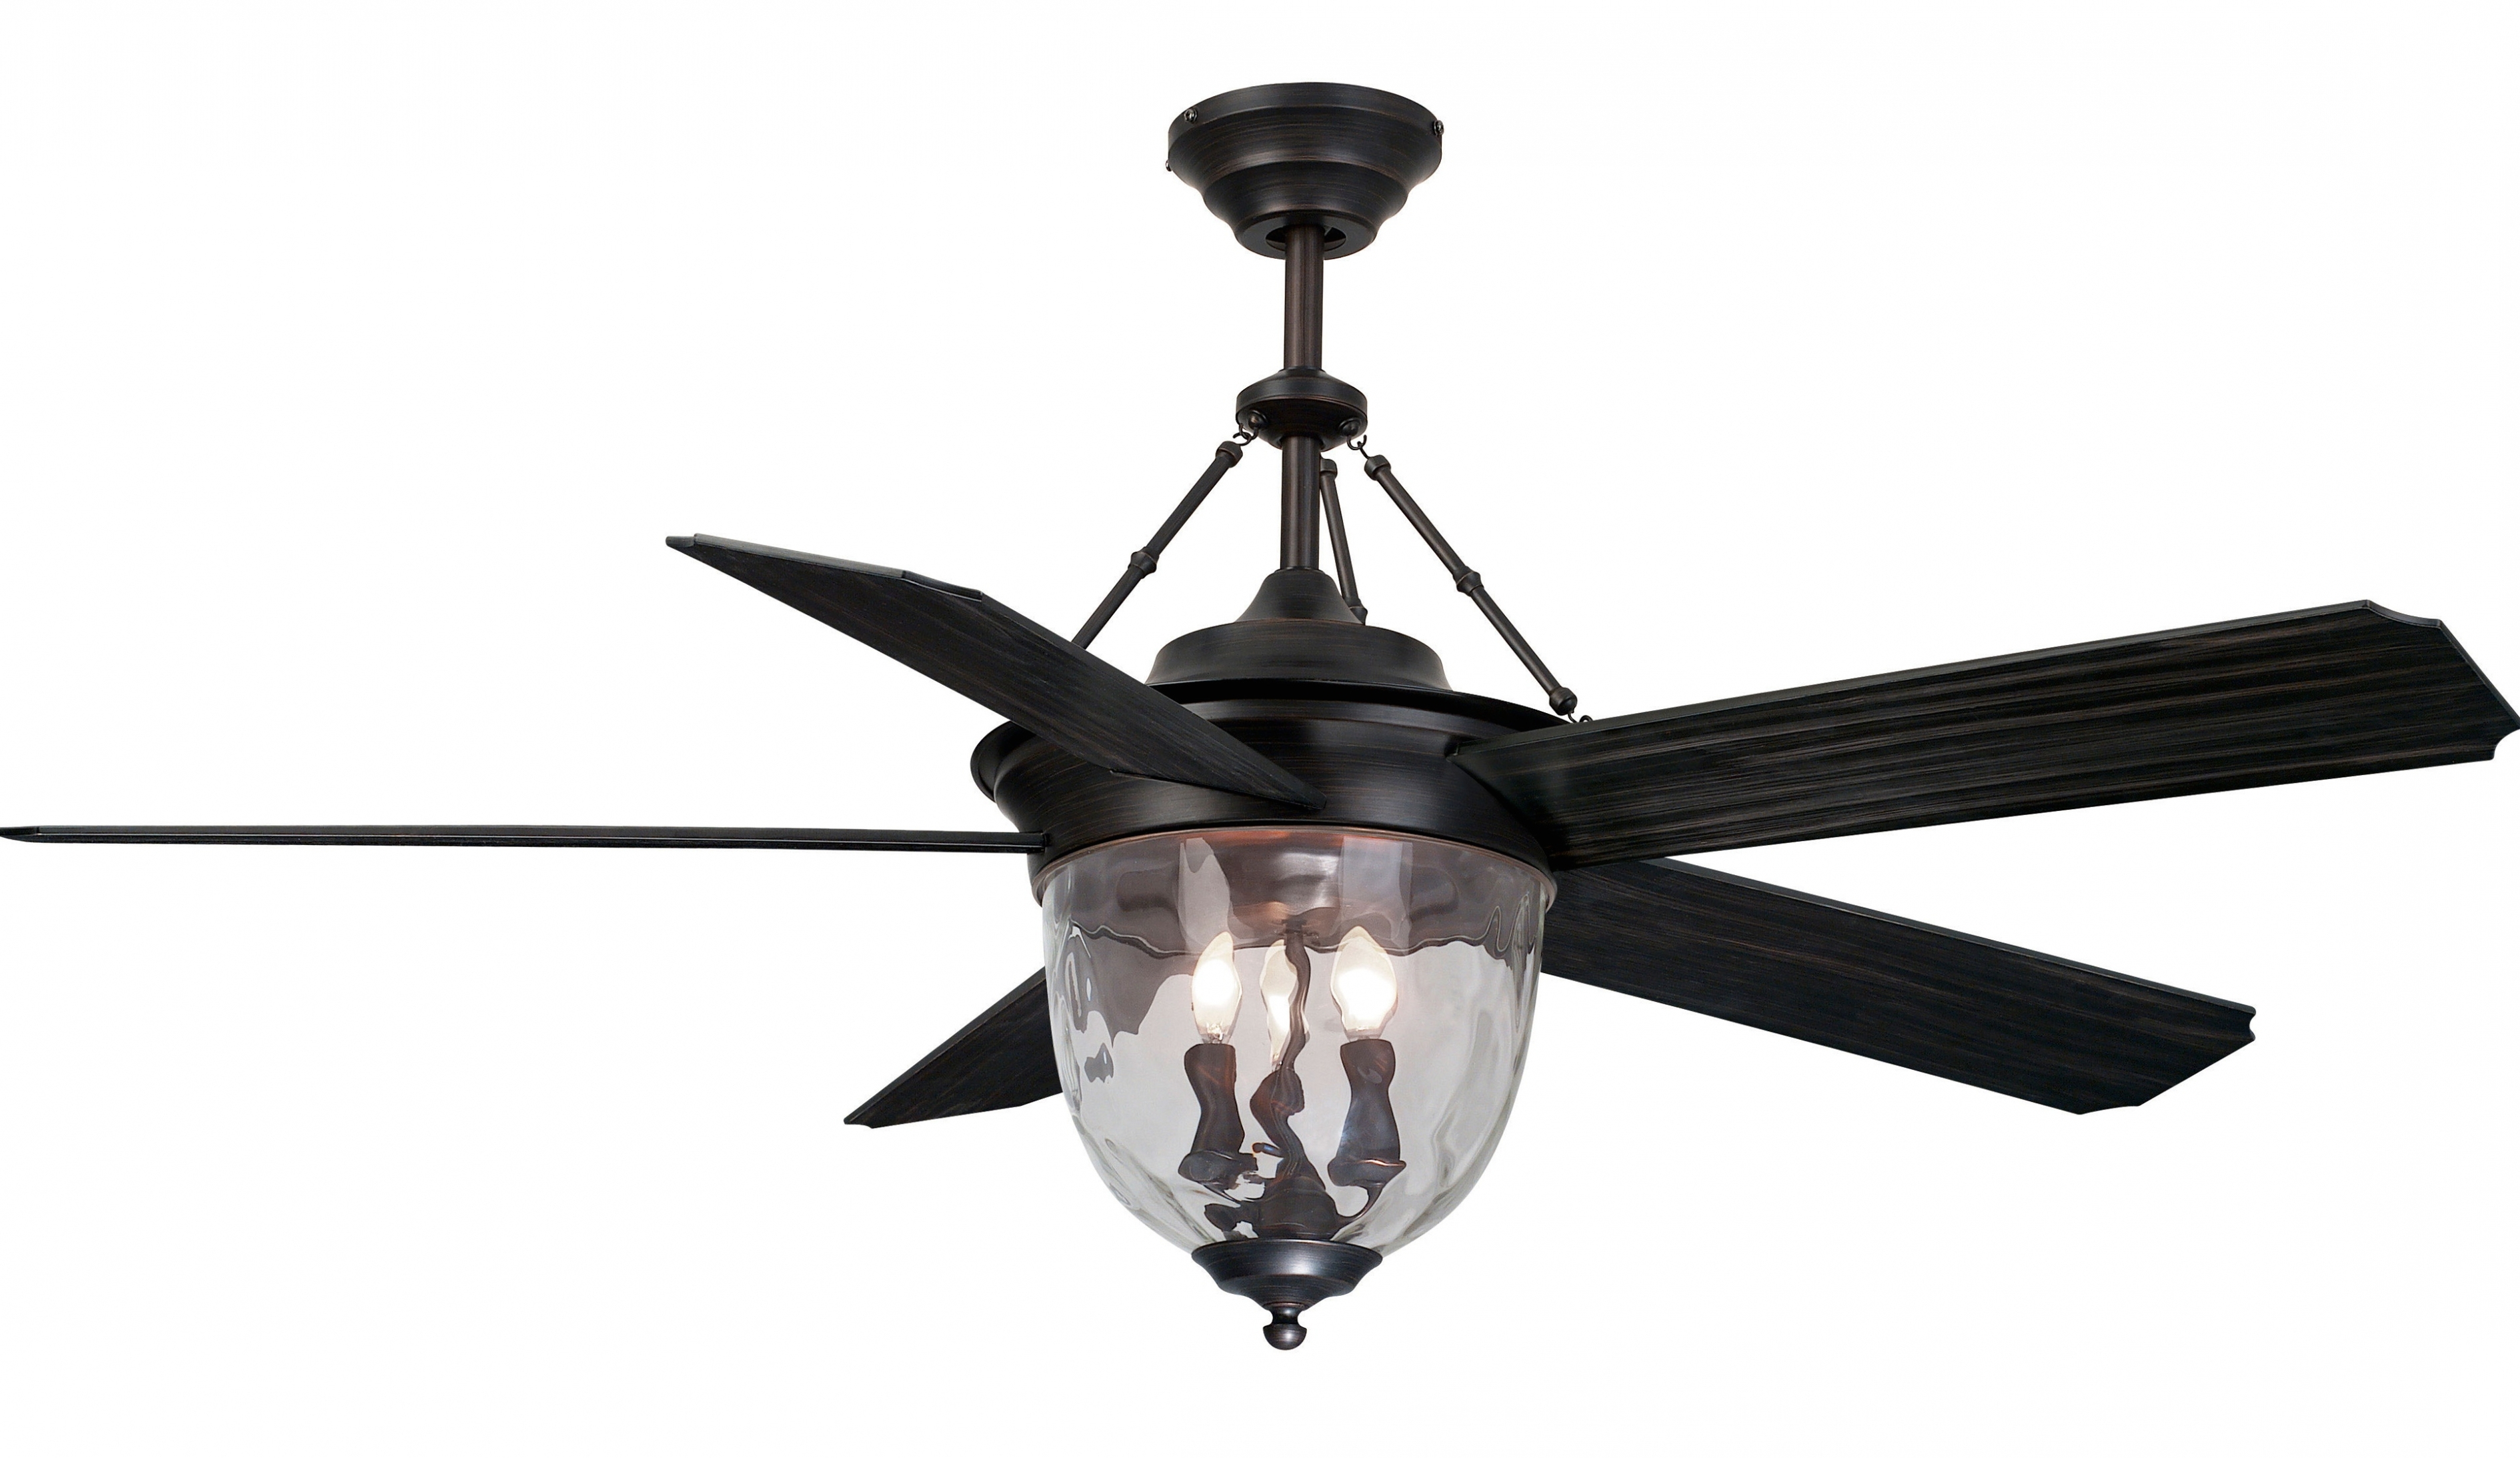 Famous Lowes Outdoor Ceiling Fans With Lights Fabulous Bathroom Ceiling With Lowes Outdoor Ceiling Fans With Lights (View 4 of 20)